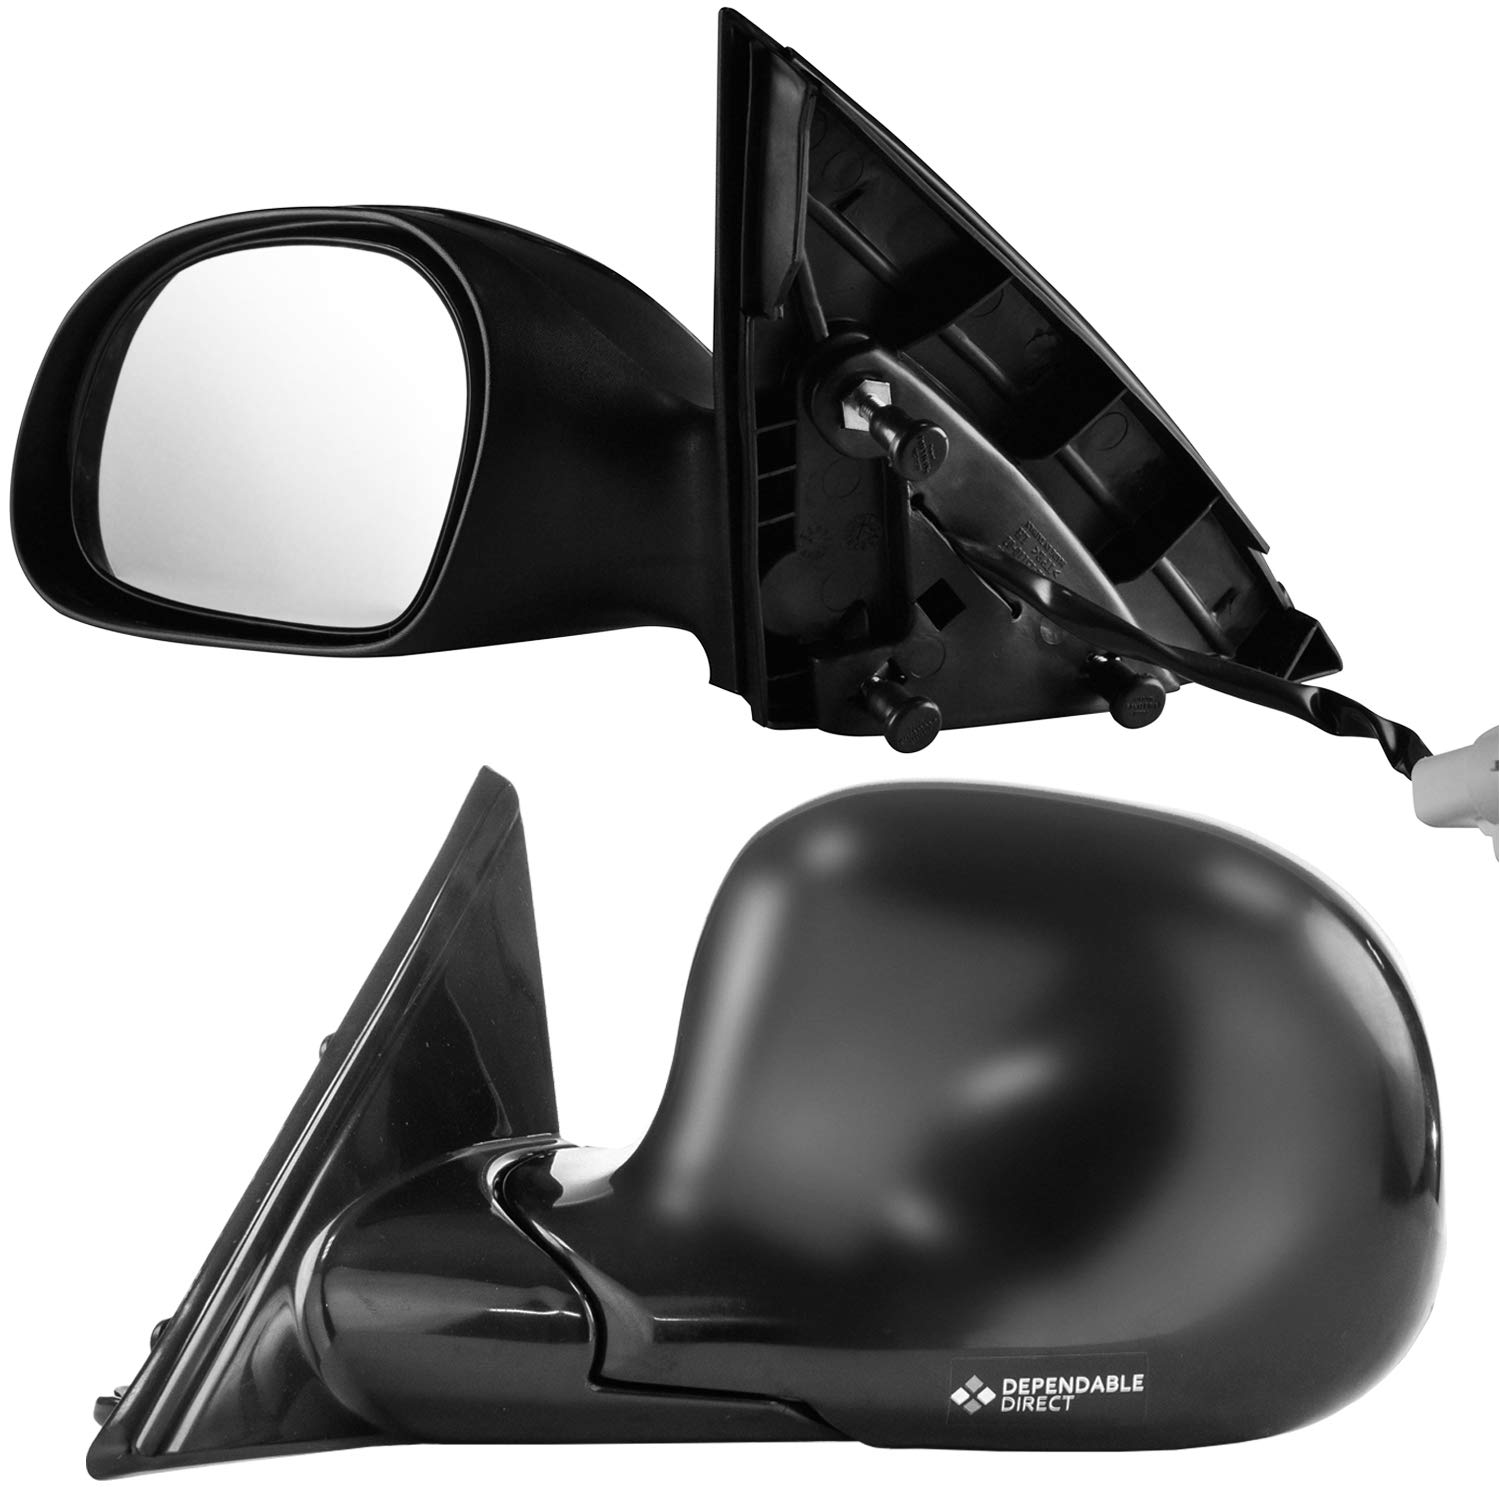 Driver Side Textured /& Unpainted Cover Side View Mirror for 2000-2007 Ford Taurus 2000-2005 Mercury Sable